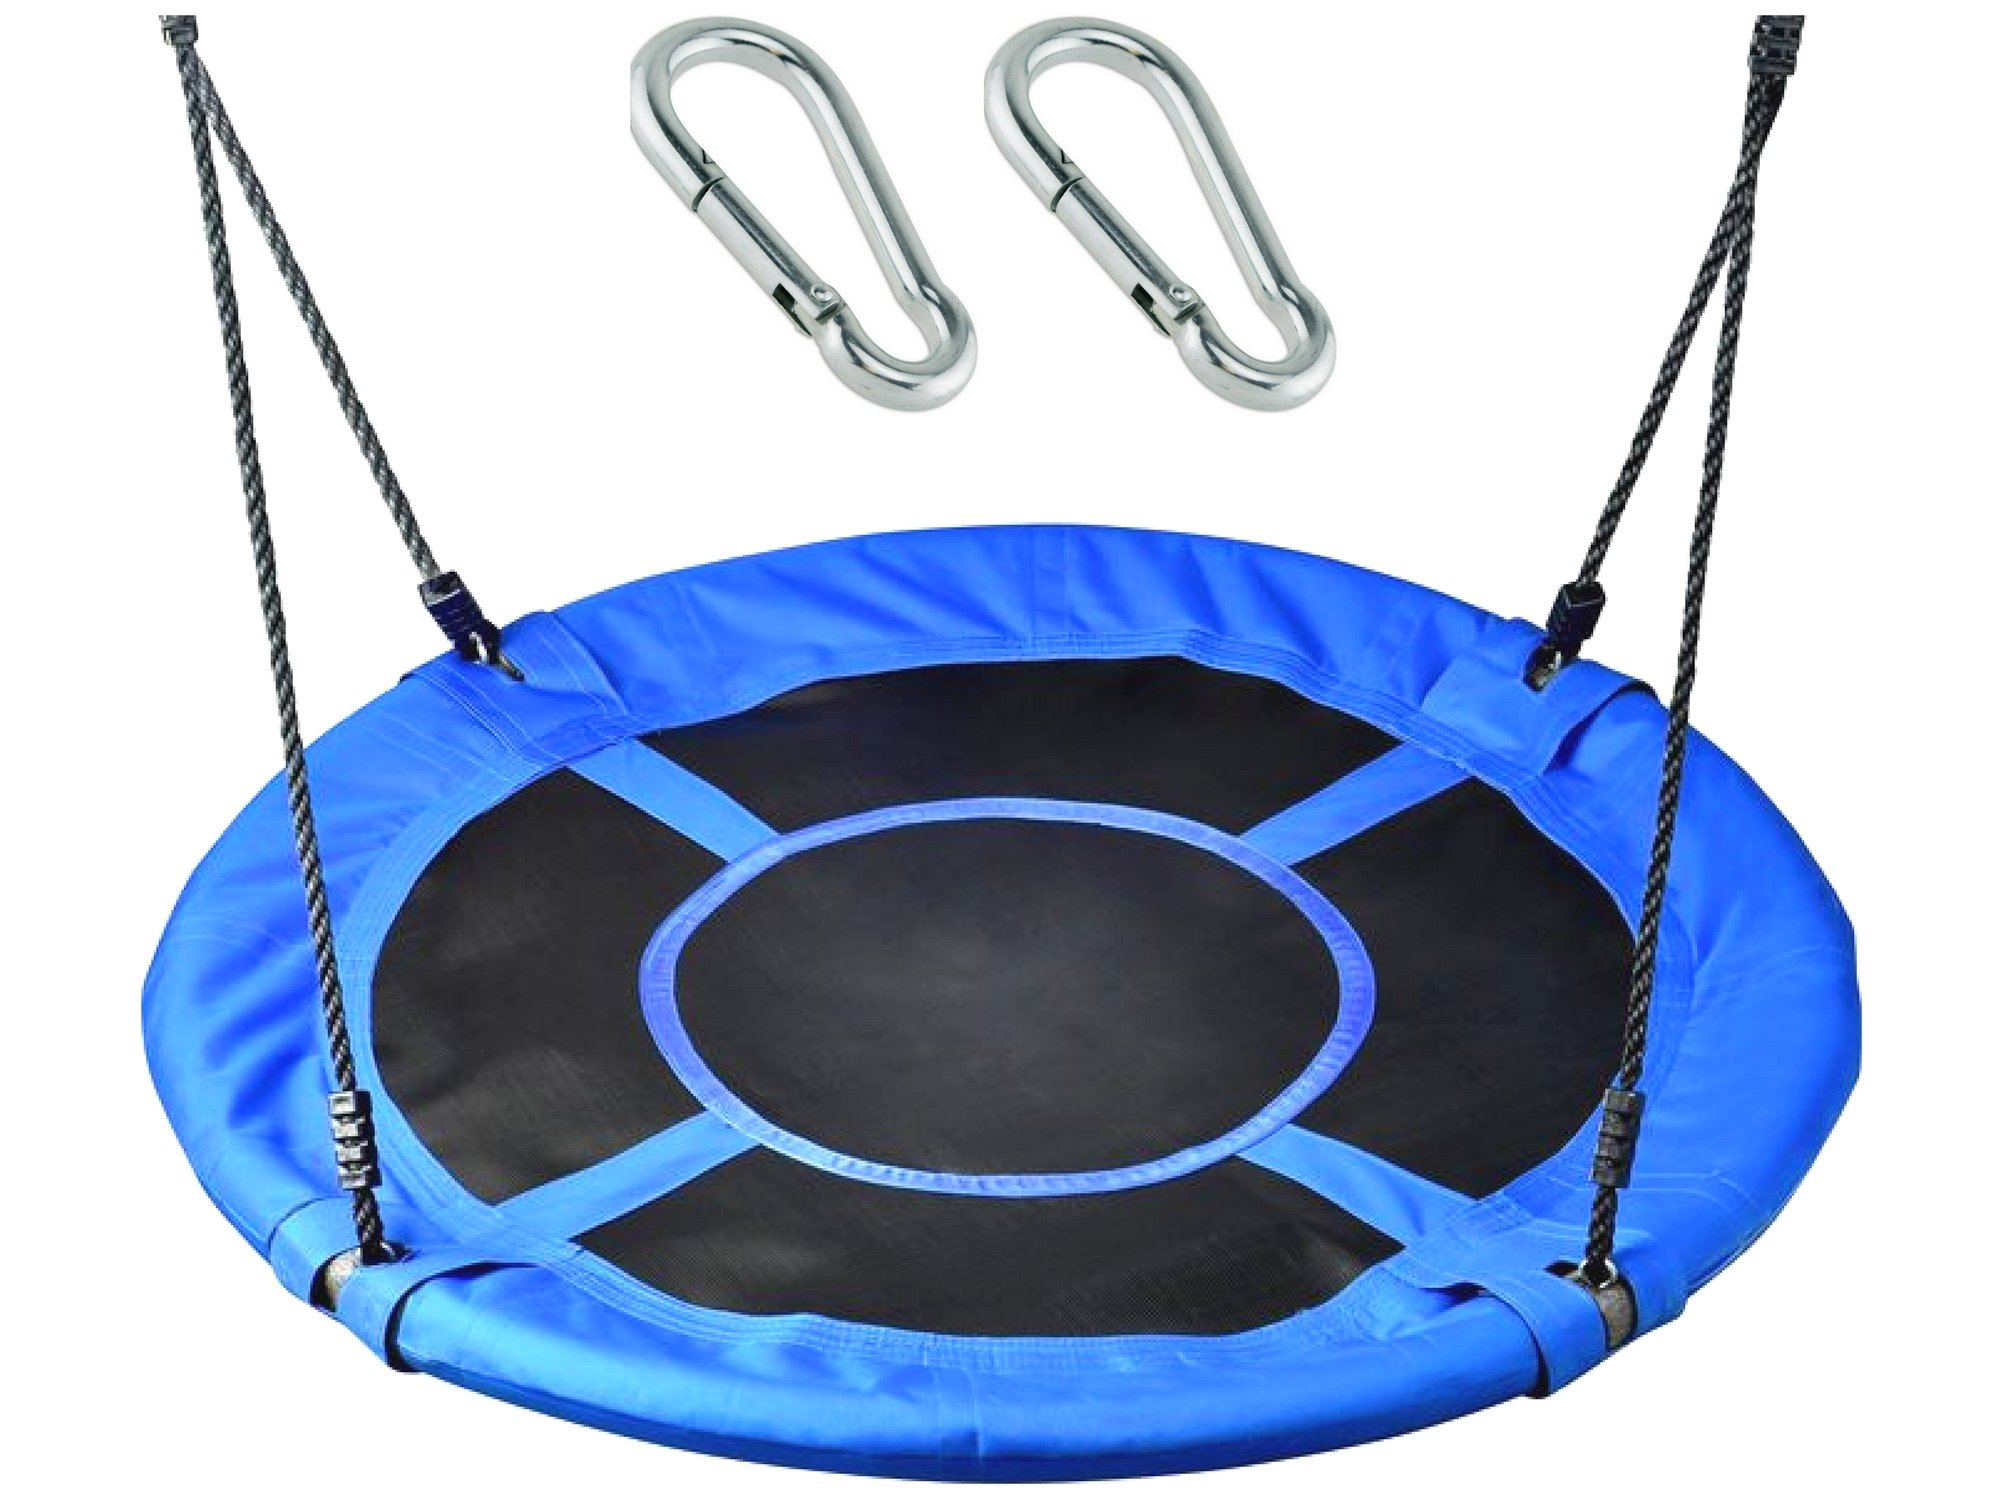 """Saucer Swing by Soarin Supply Co.    40"""" Round Tree Swing Set with Bonus Carabiners    Adjustable Straps - Waterproof - Easy to Install    Great for kids and the Whole Family"""